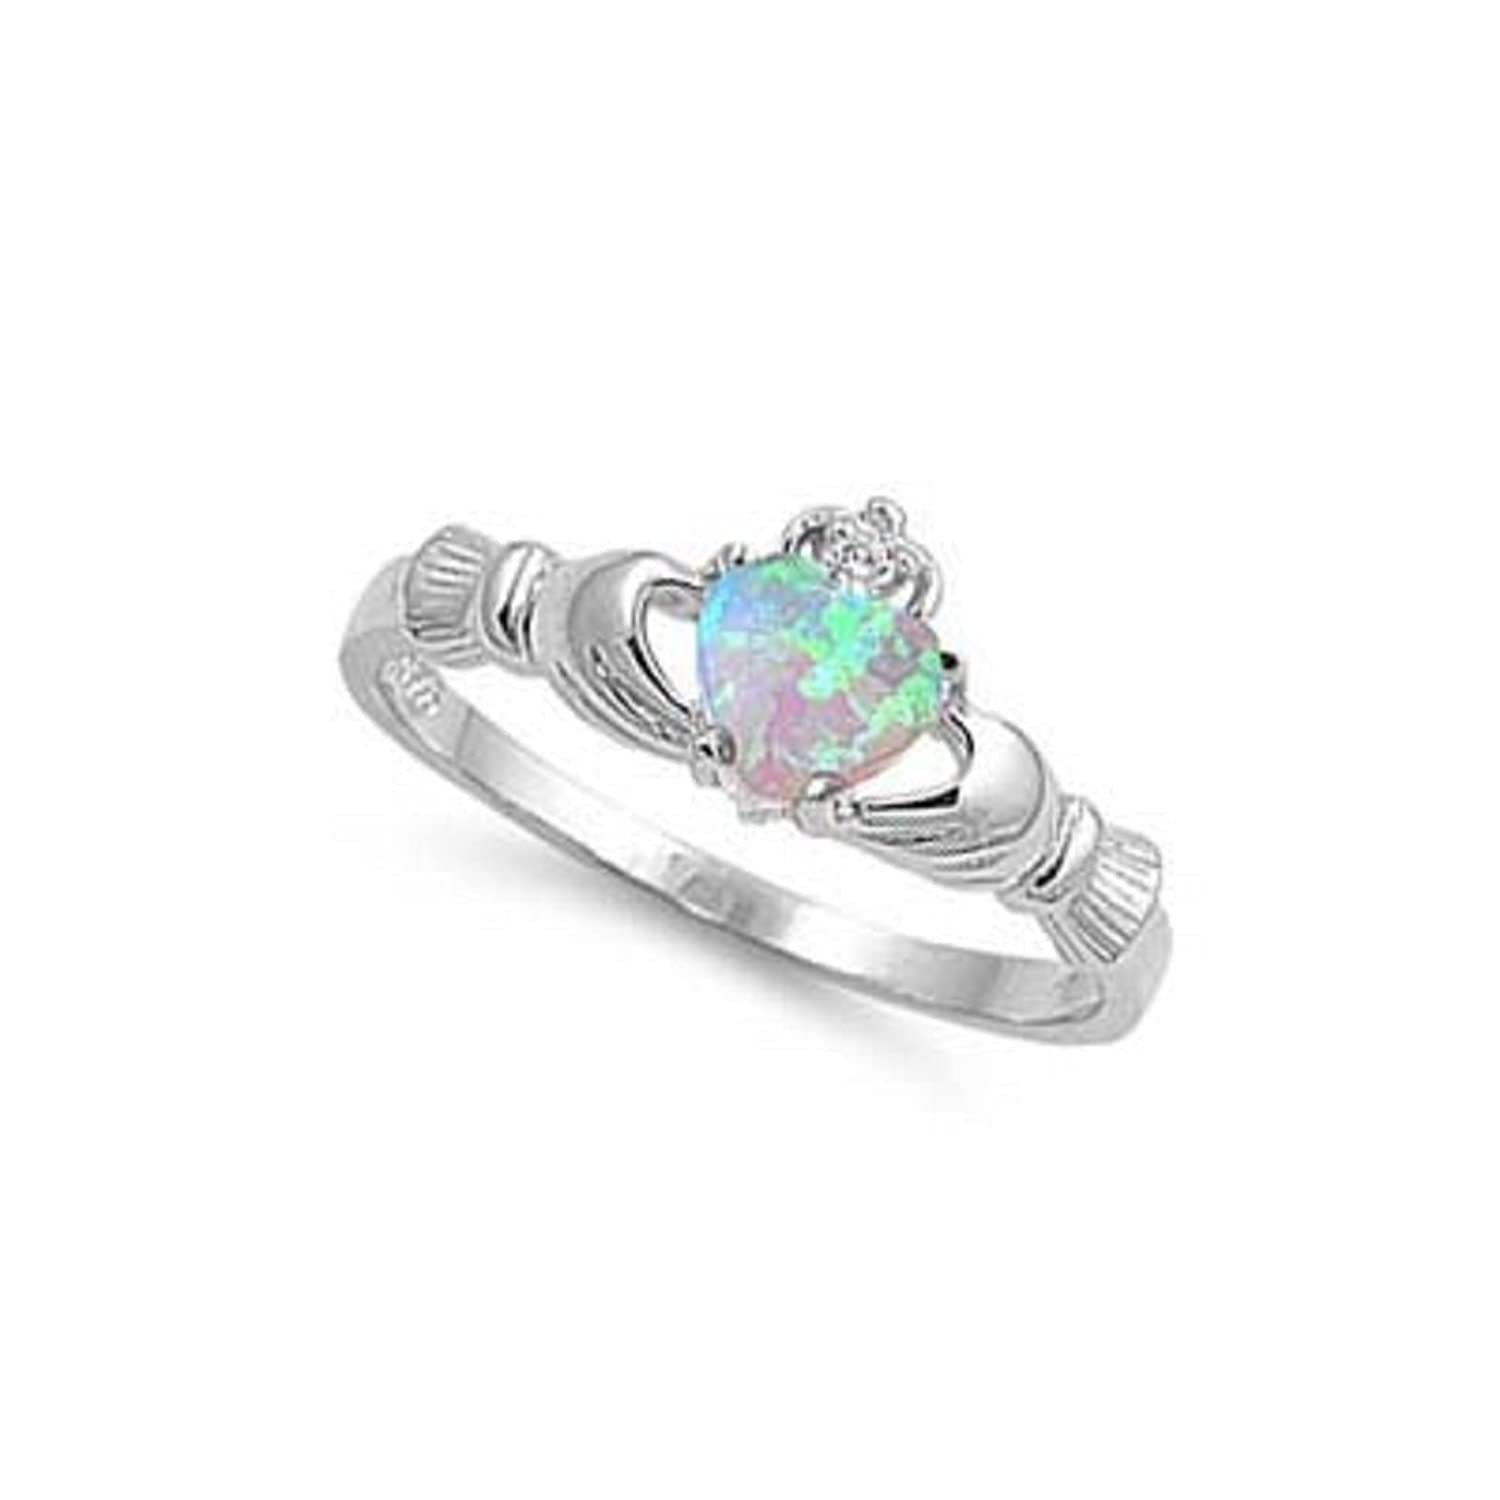 images best october birthstone jewelry on rings wedding pinterest of awesome photograph